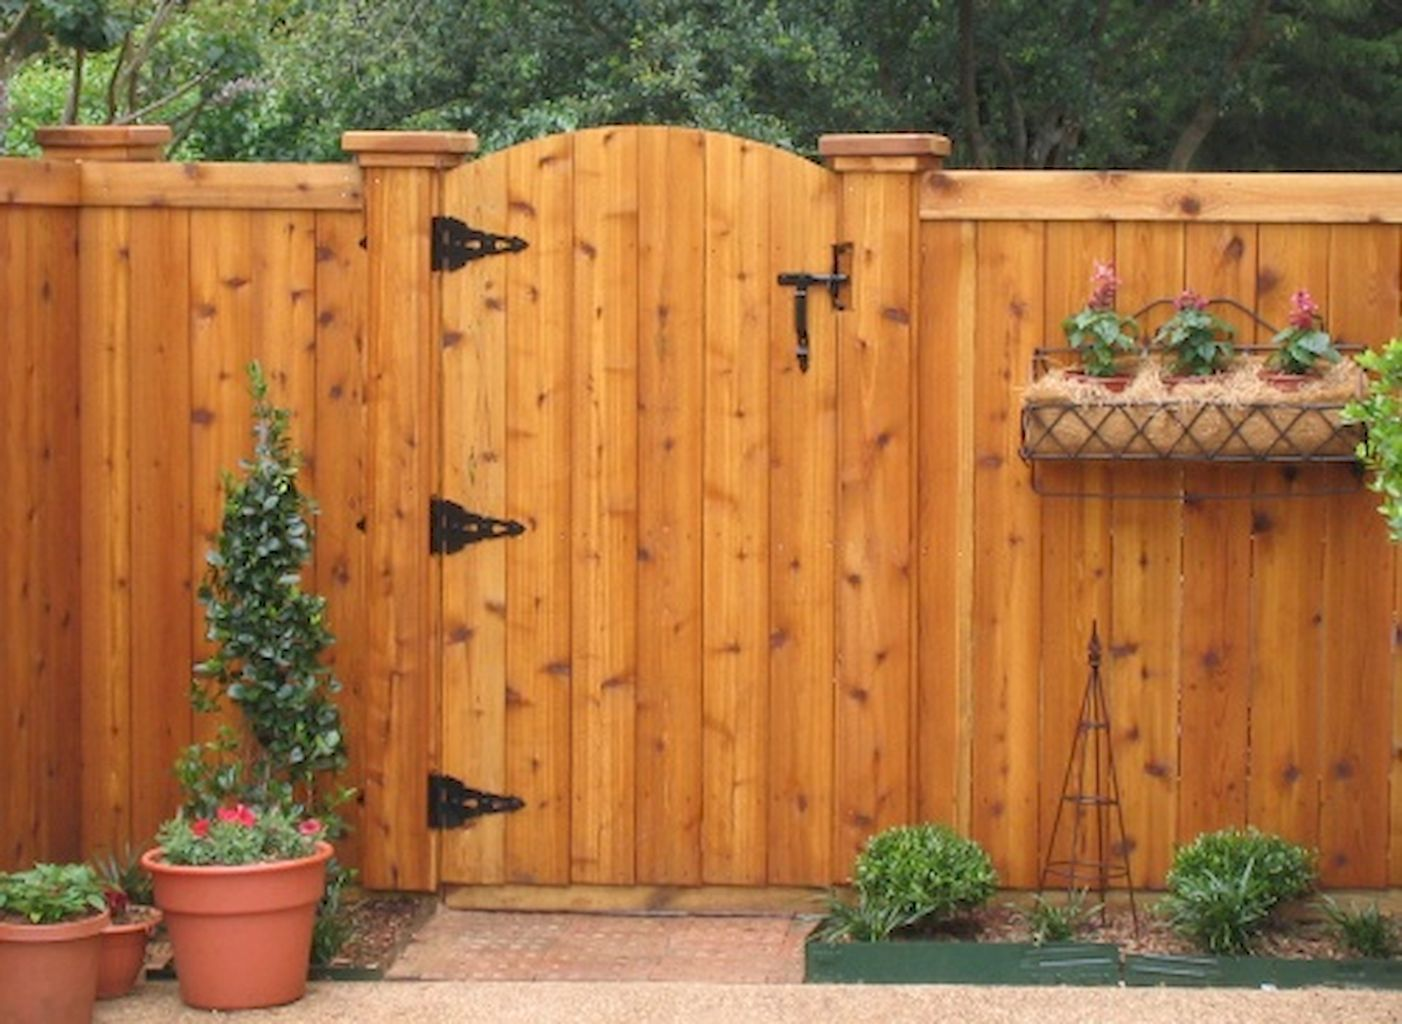 Creative privacy fence ideas for gardens and backyards (54 ...